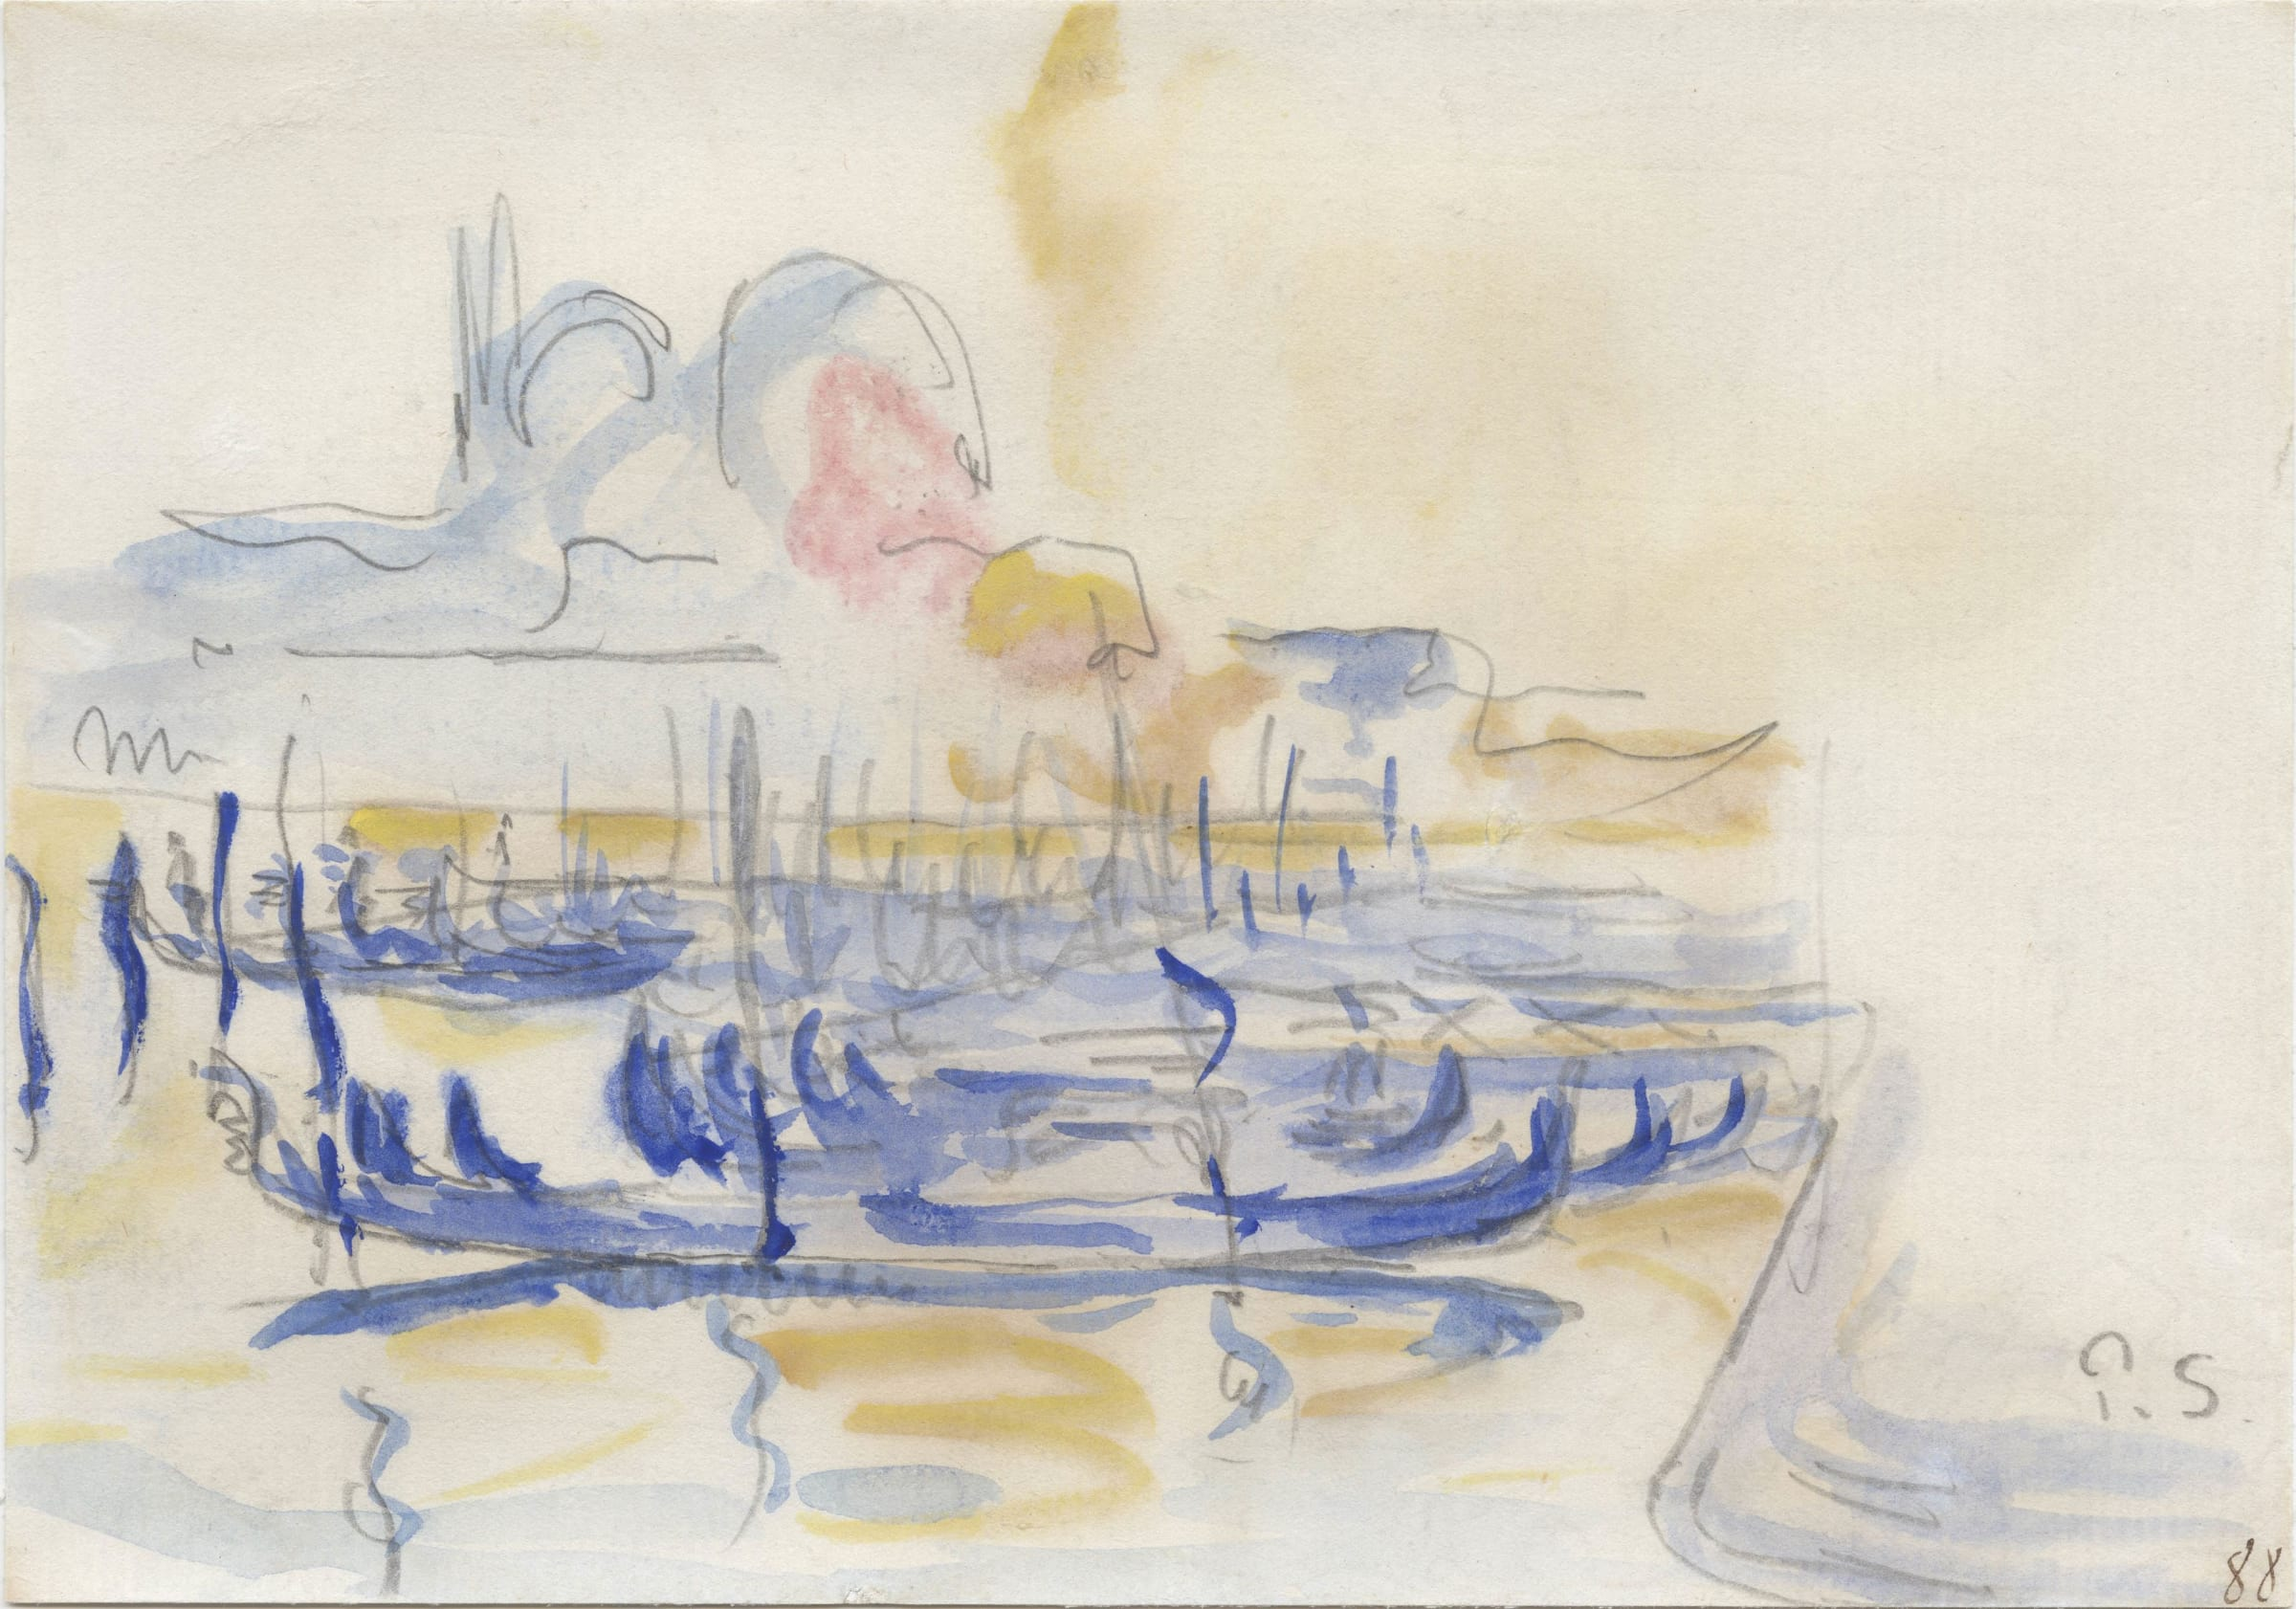 <span class=&#34;link fancybox-details-link&#34;><a href=&#34;/artists/75-paul-signac/works/9421-paul-signac-vue-de-venise-1888/&#34;>View Detail Page</a></span><div class=&#34;artist&#34;><span class=&#34;artist&#34;><strong>Paul Signac</strong></span></div><div class=&#34;title&#34;><em>Vue de Venise</em>, 1888</div><div class=&#34;signed_and_dated&#34;>Signed and dated lower right P.S 88</div><div class=&#34;medium&#34;>Watercolour on paper</div><div class=&#34;dimensions&#34;>14 x 20 cm<br /> 5 ½ x 7 7/8 inches</div>